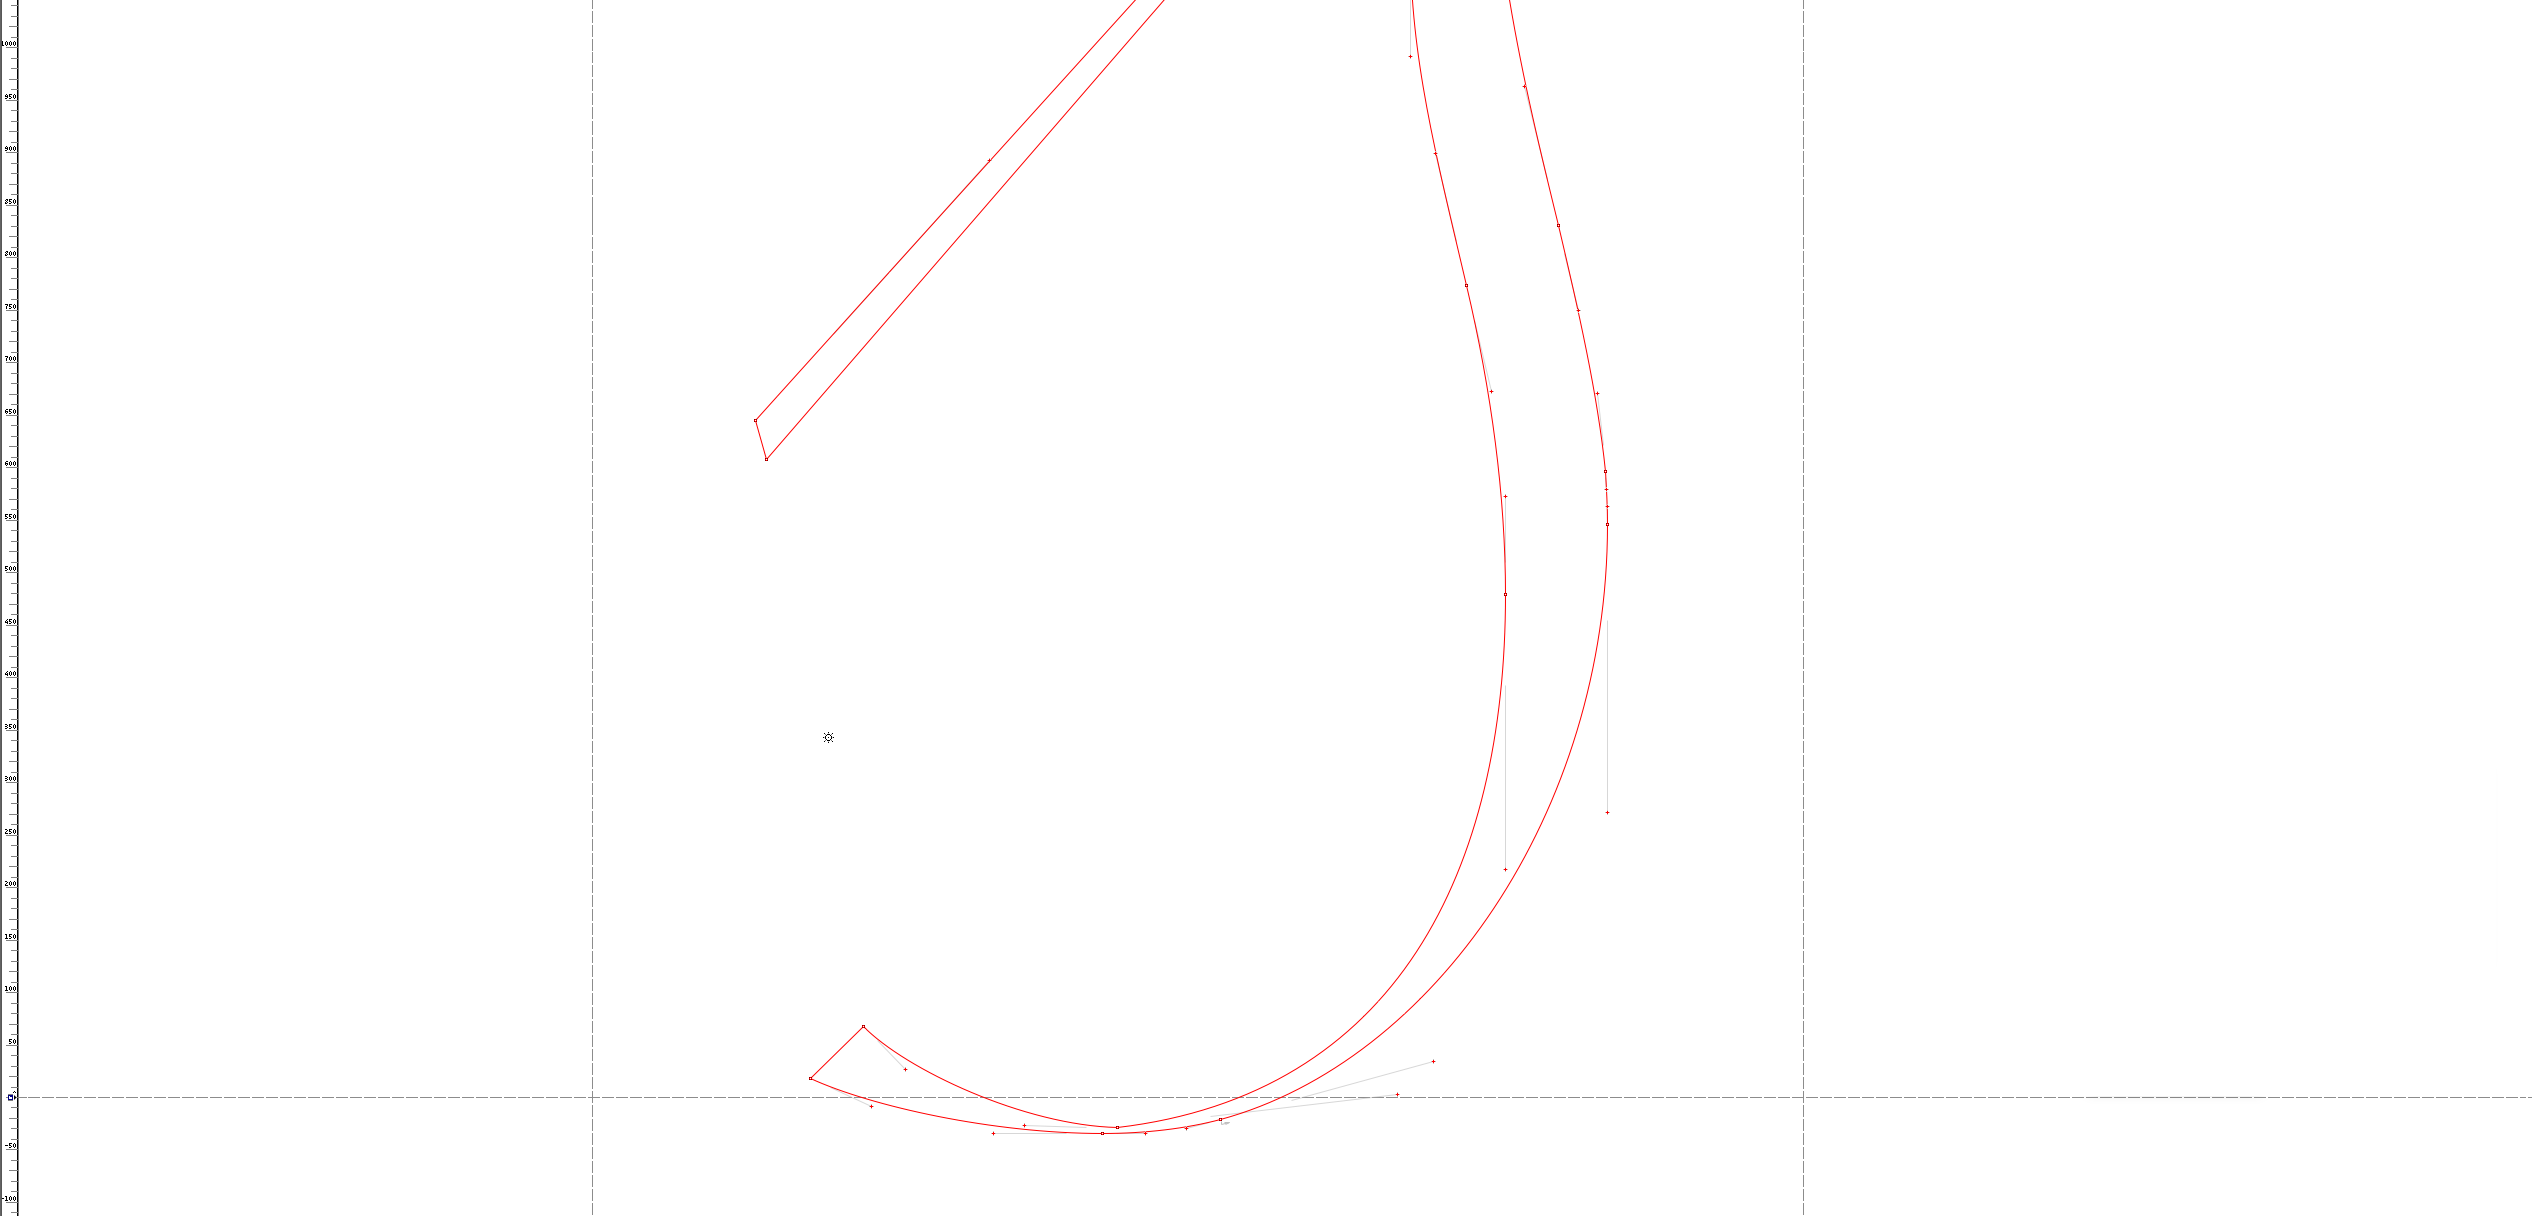 's': Design Detail Bézier Curves